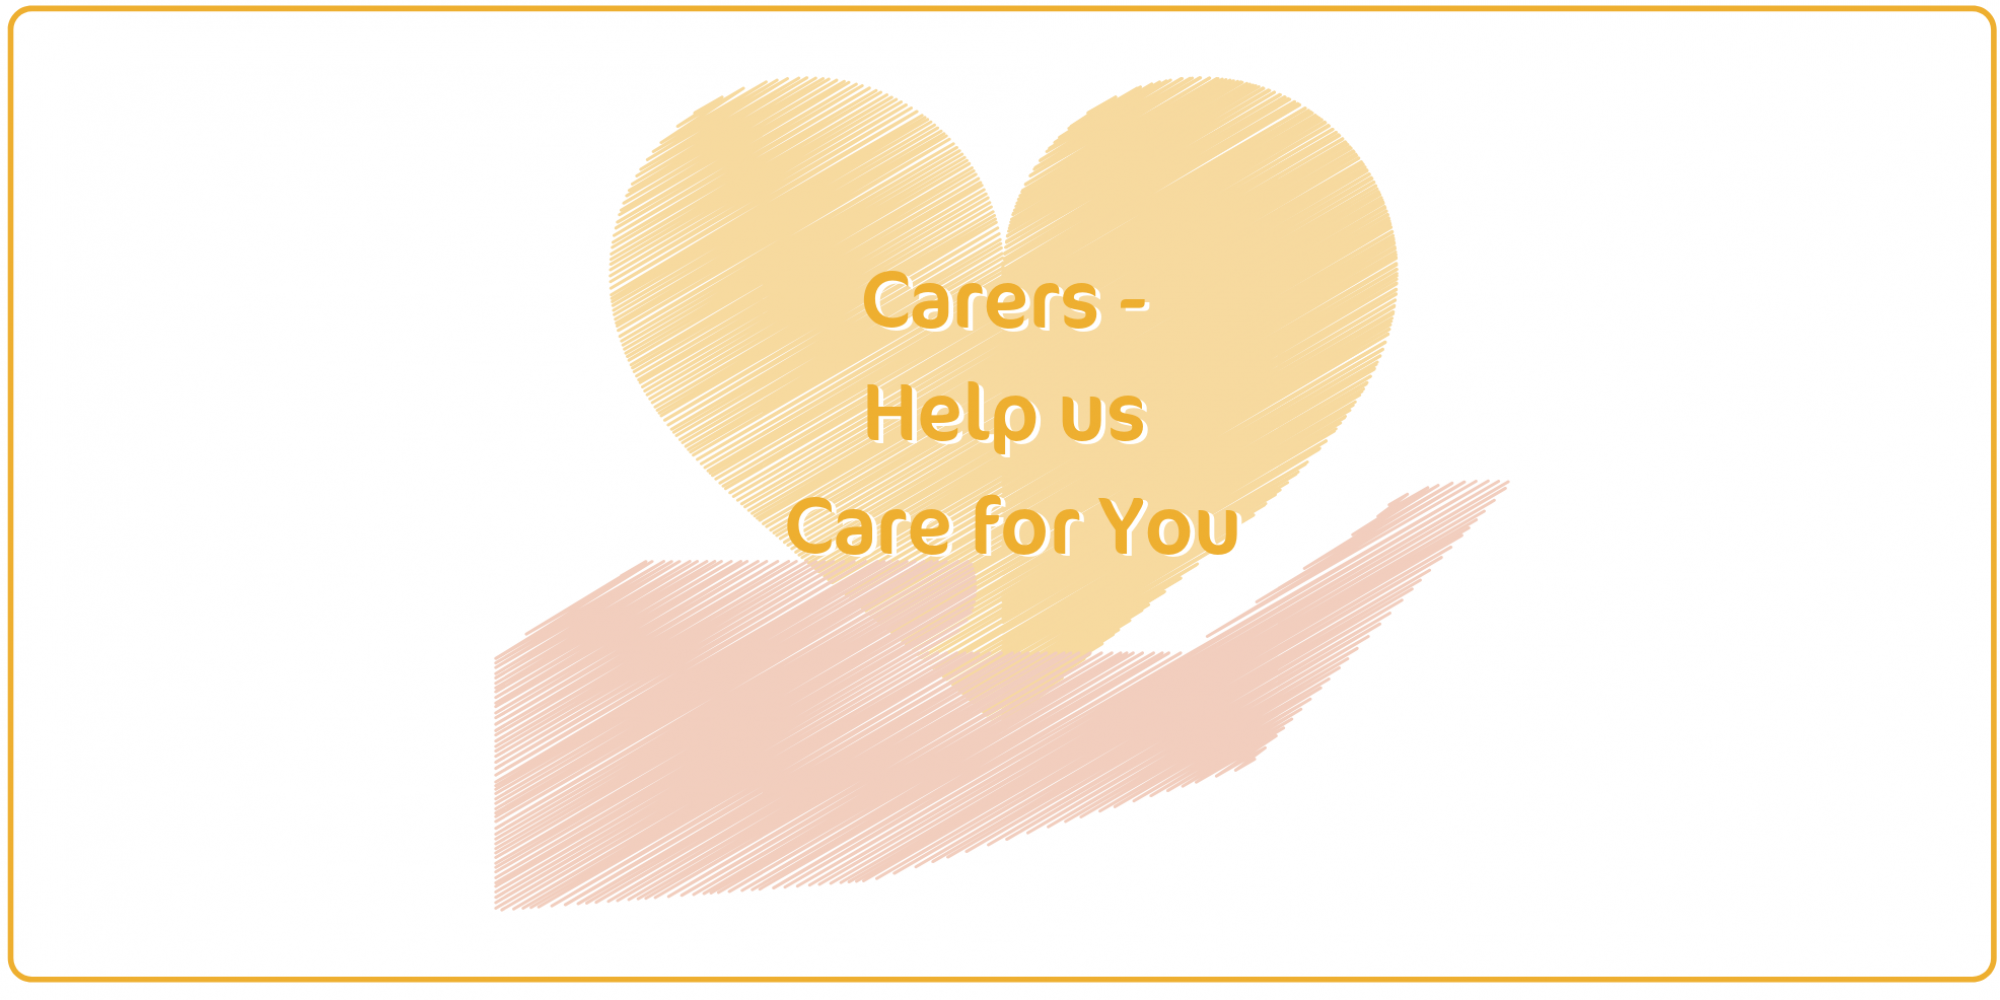 Carers - Help us Care for You